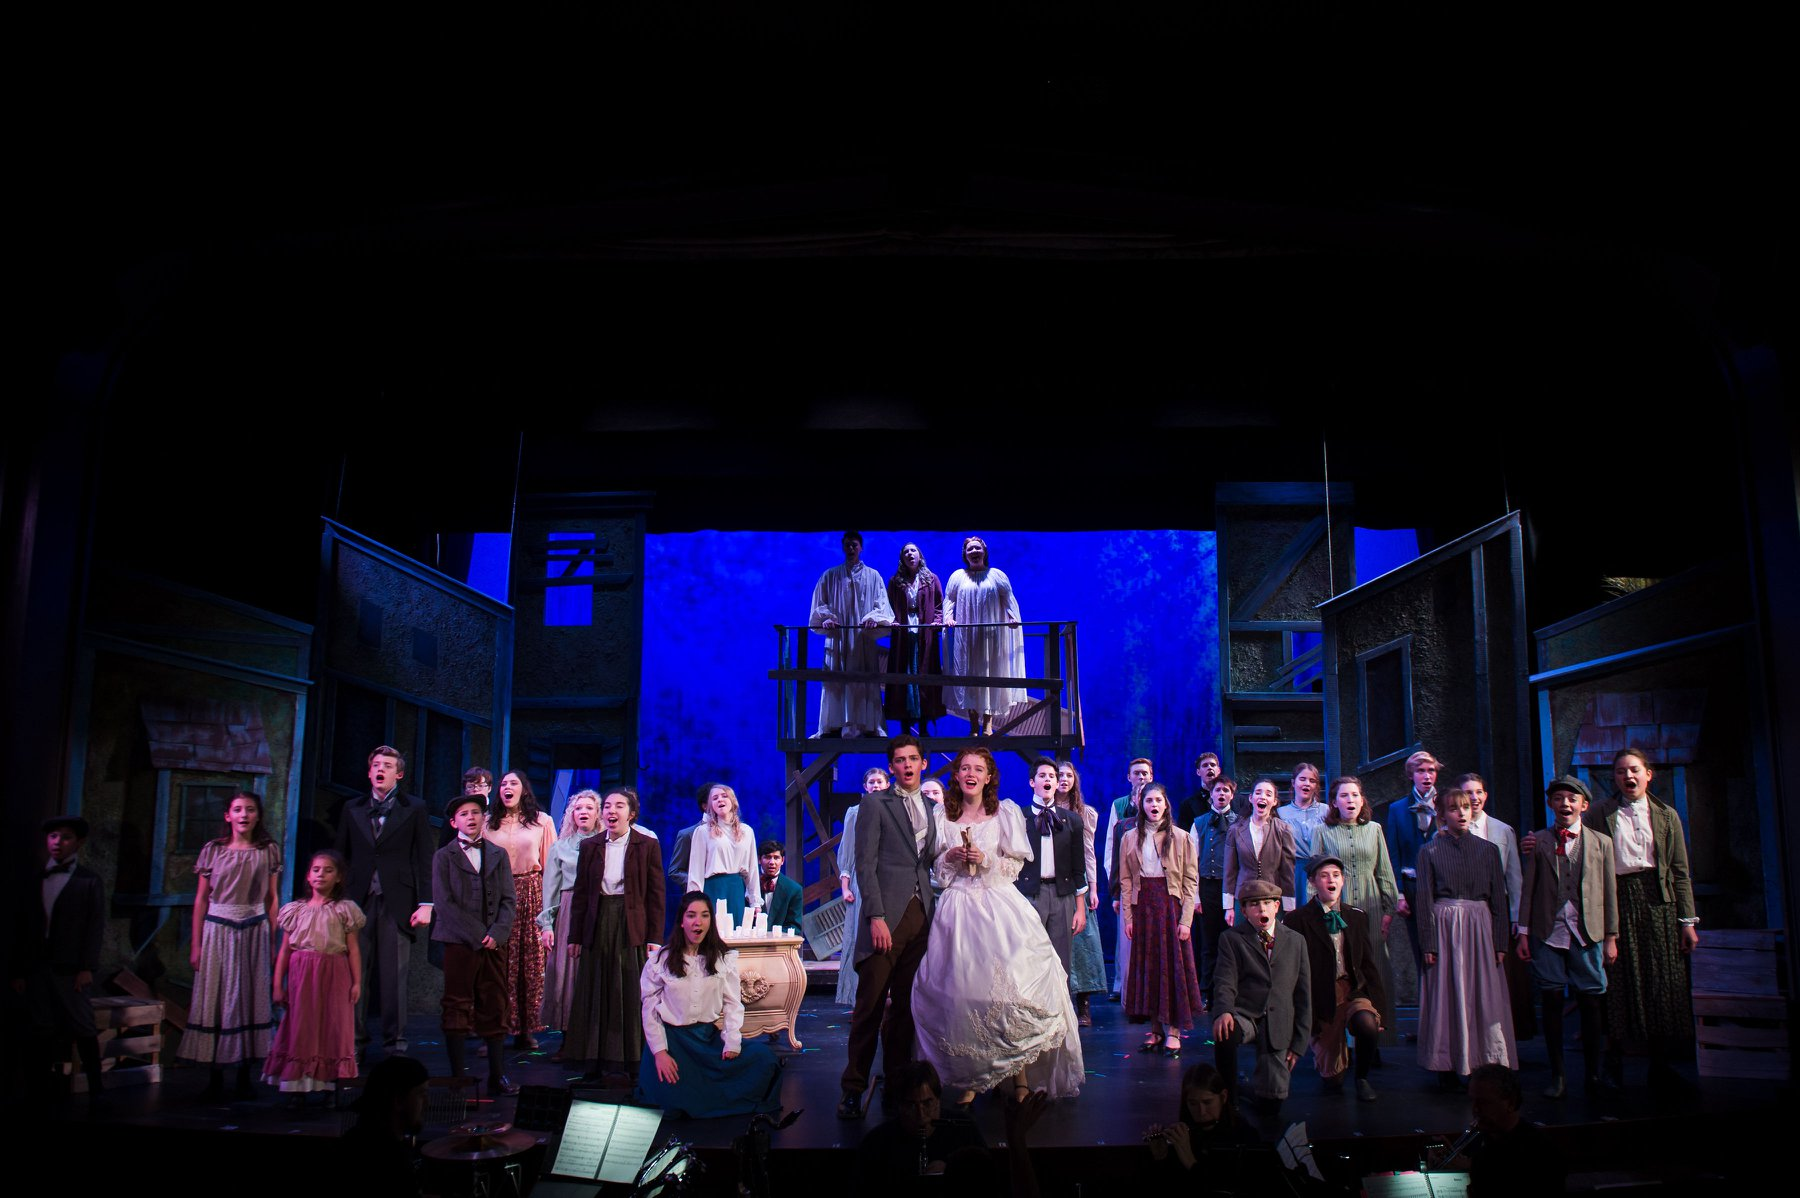 The cast of Ovations Theatre's Les Misérables: School Edition. Photo by Lock & Company.